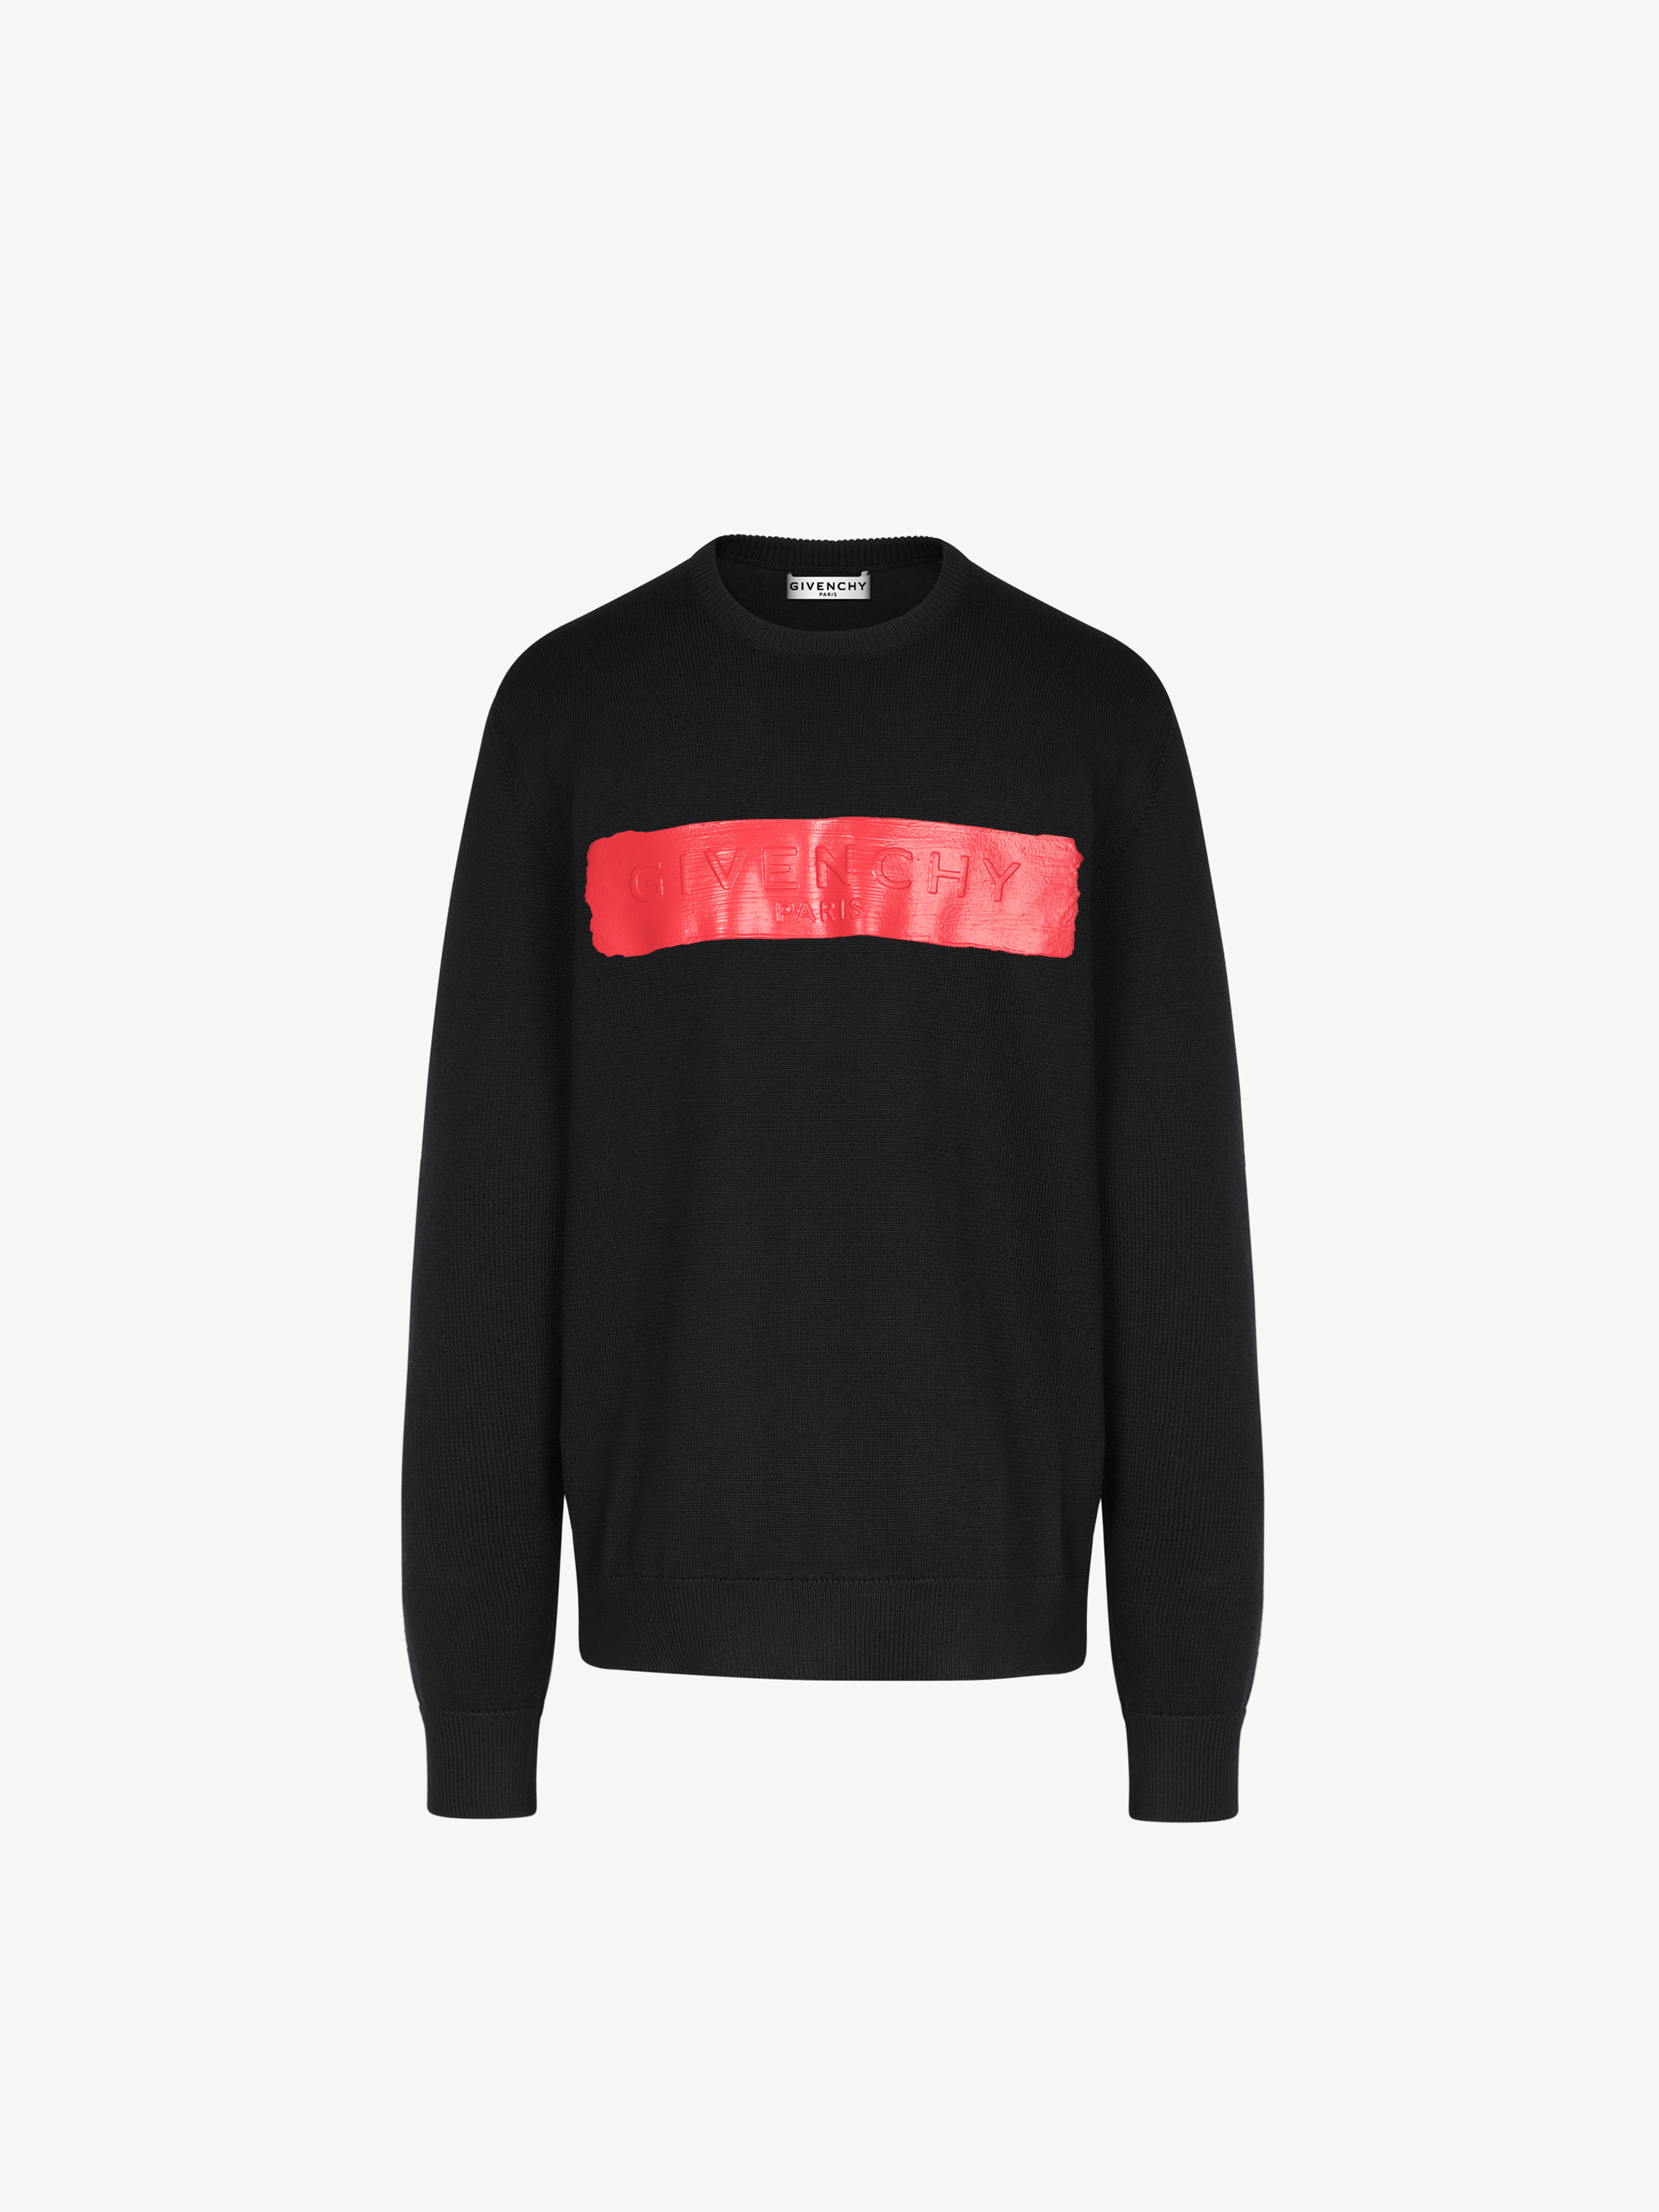 GIVENCHY sweater in wool with latex band